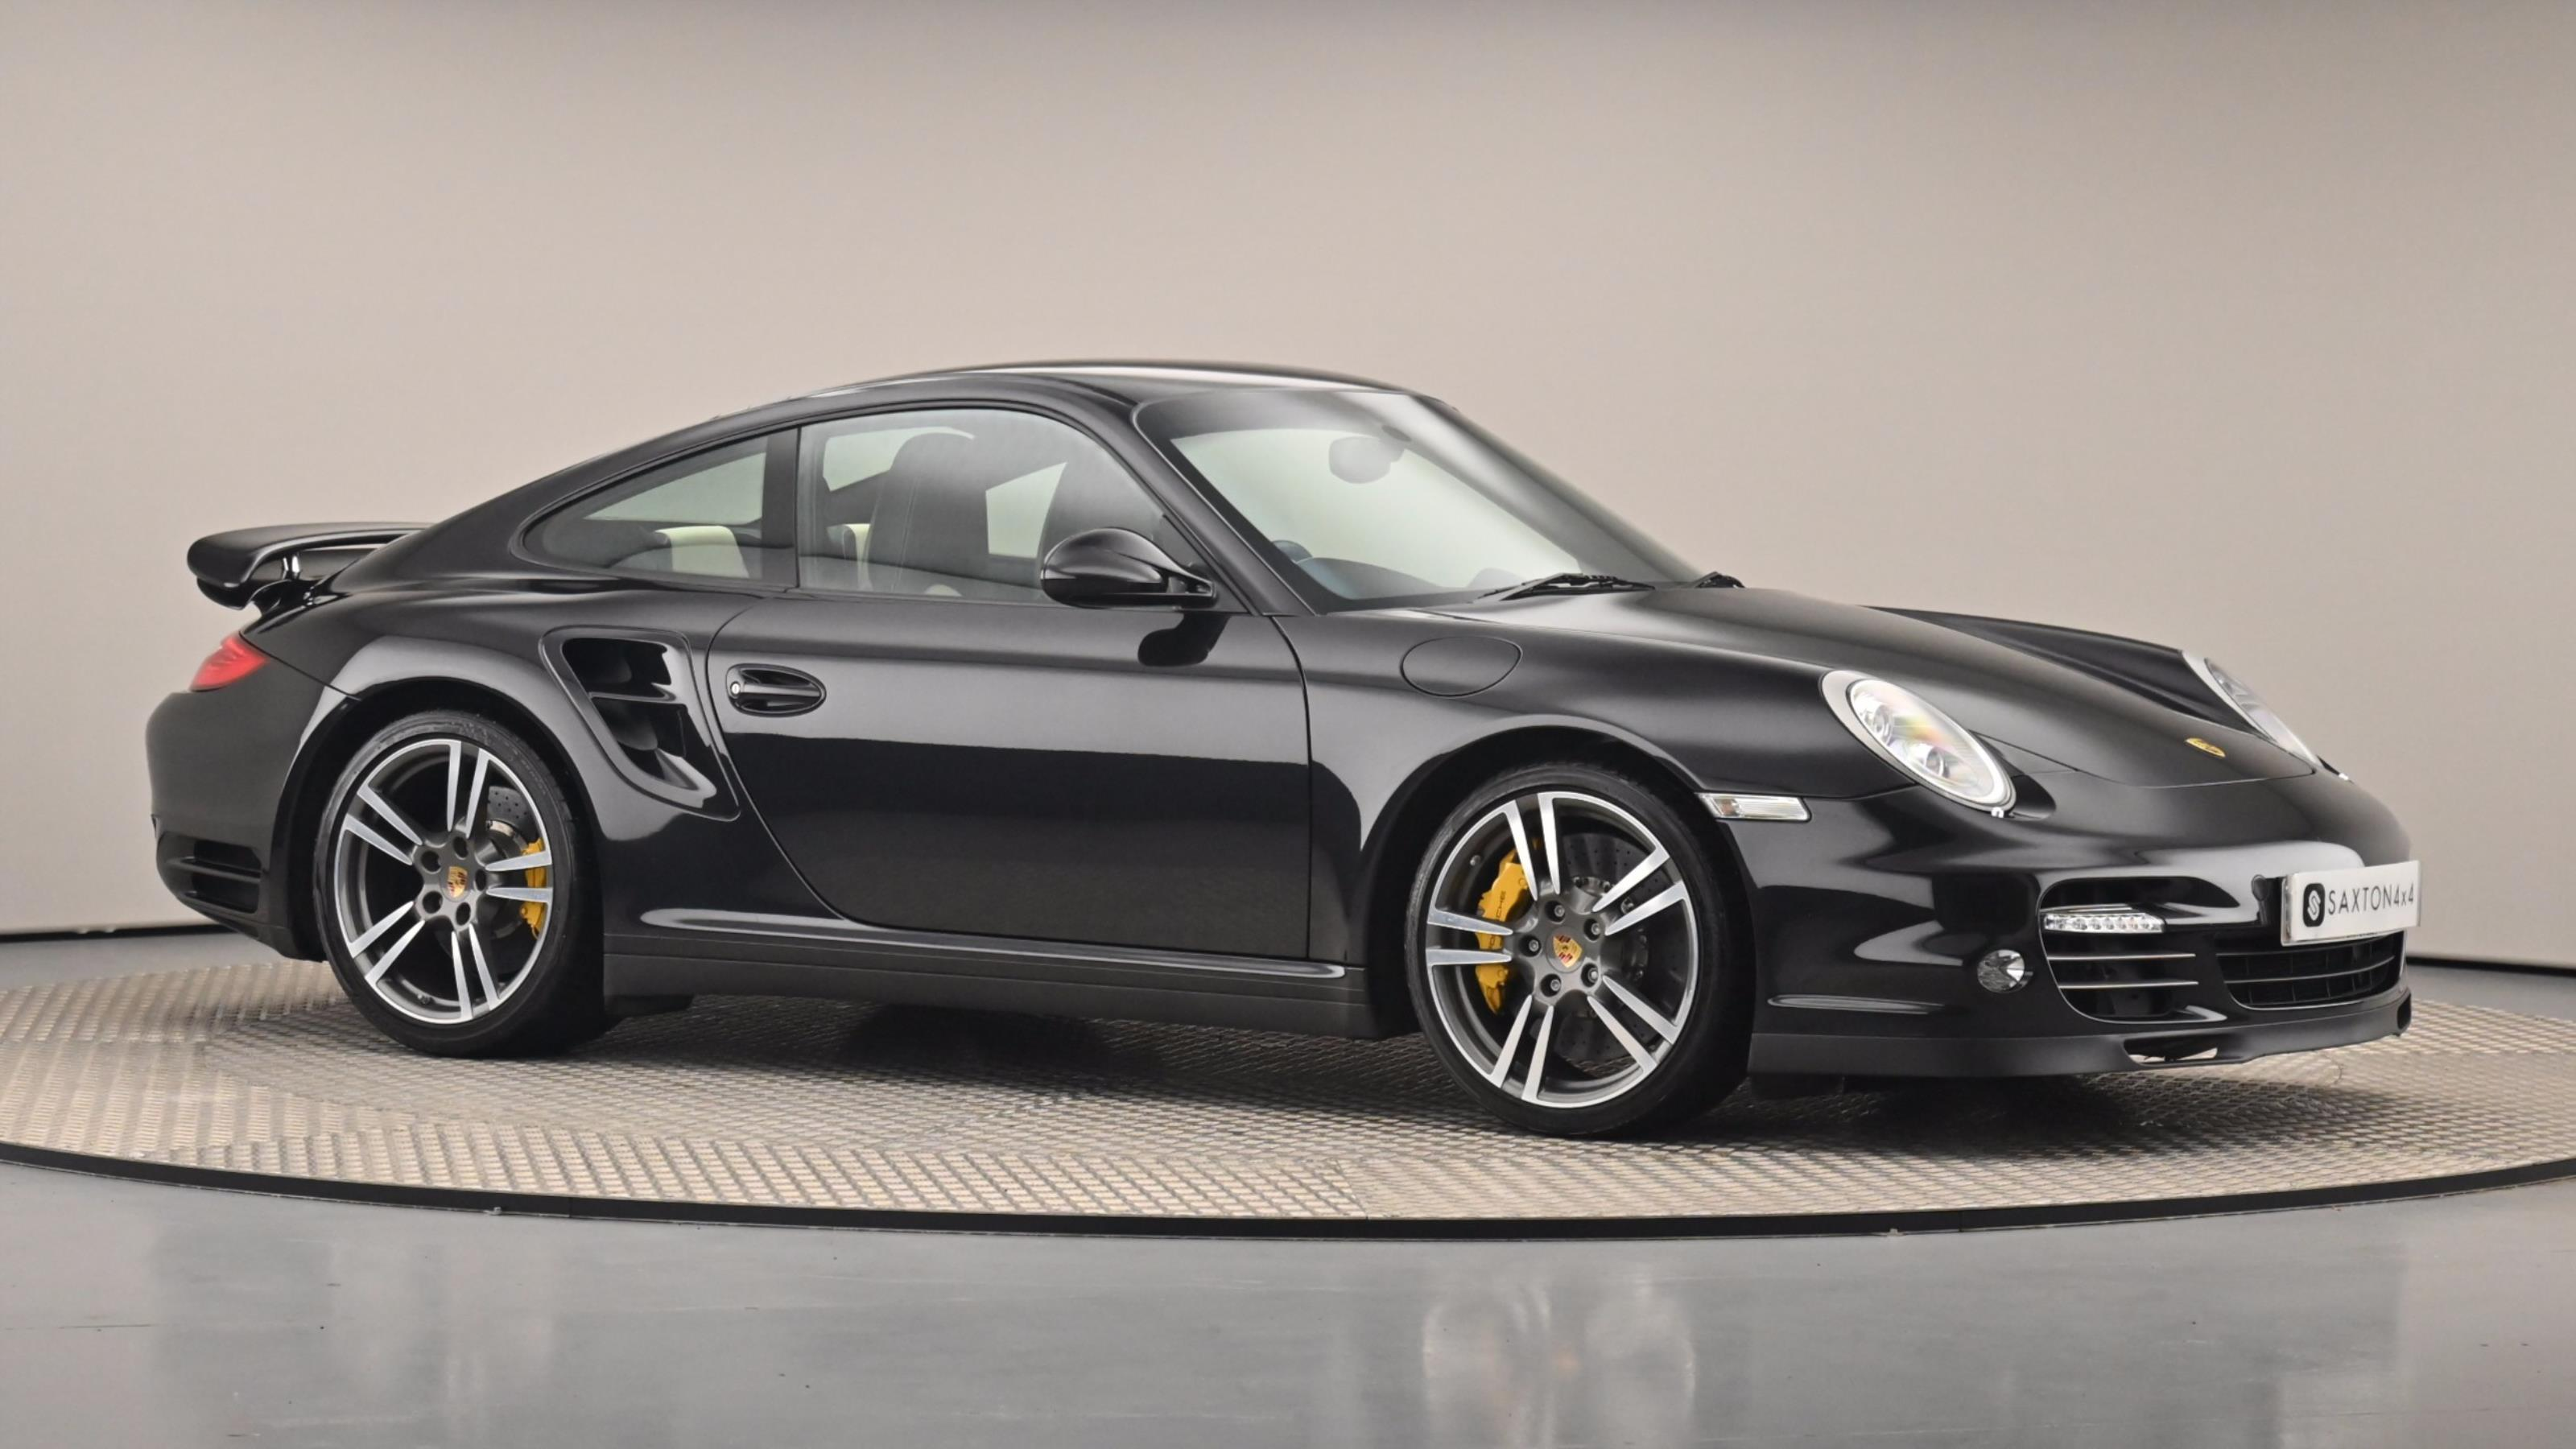 Used 11 Porsche 911 S 2dr PDK BLACK at Saxton4x4